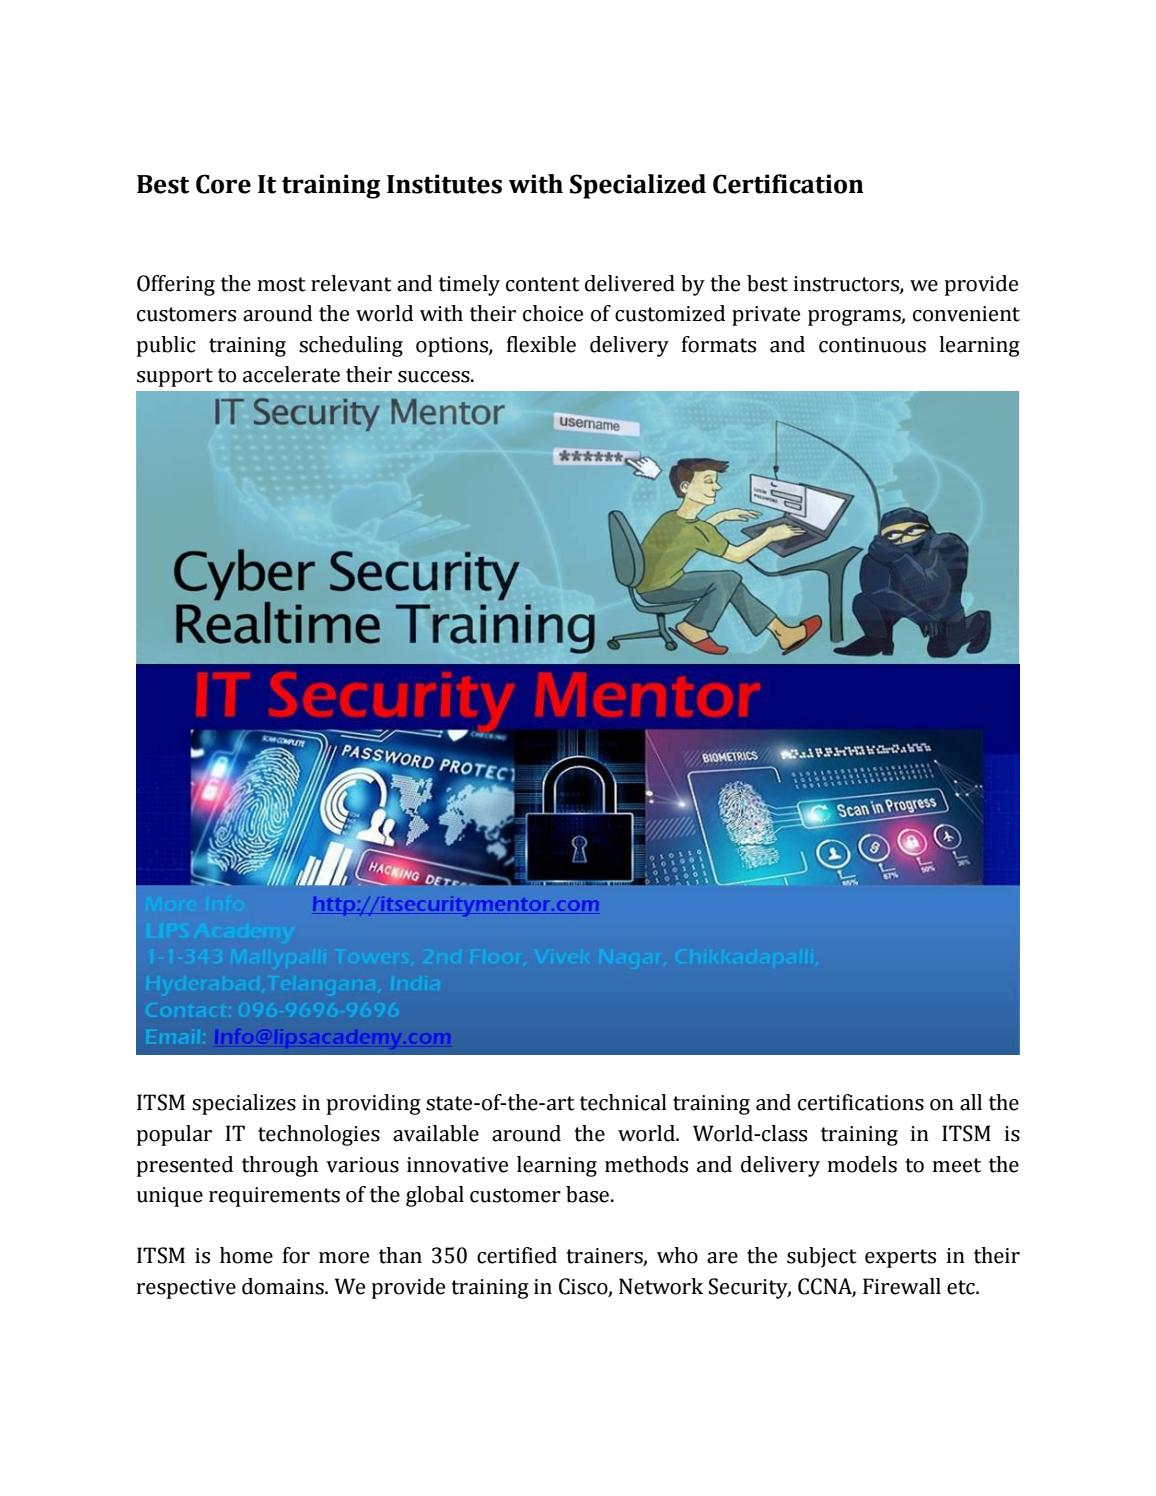 Best Core It Training Institutes With Specialized Certification By